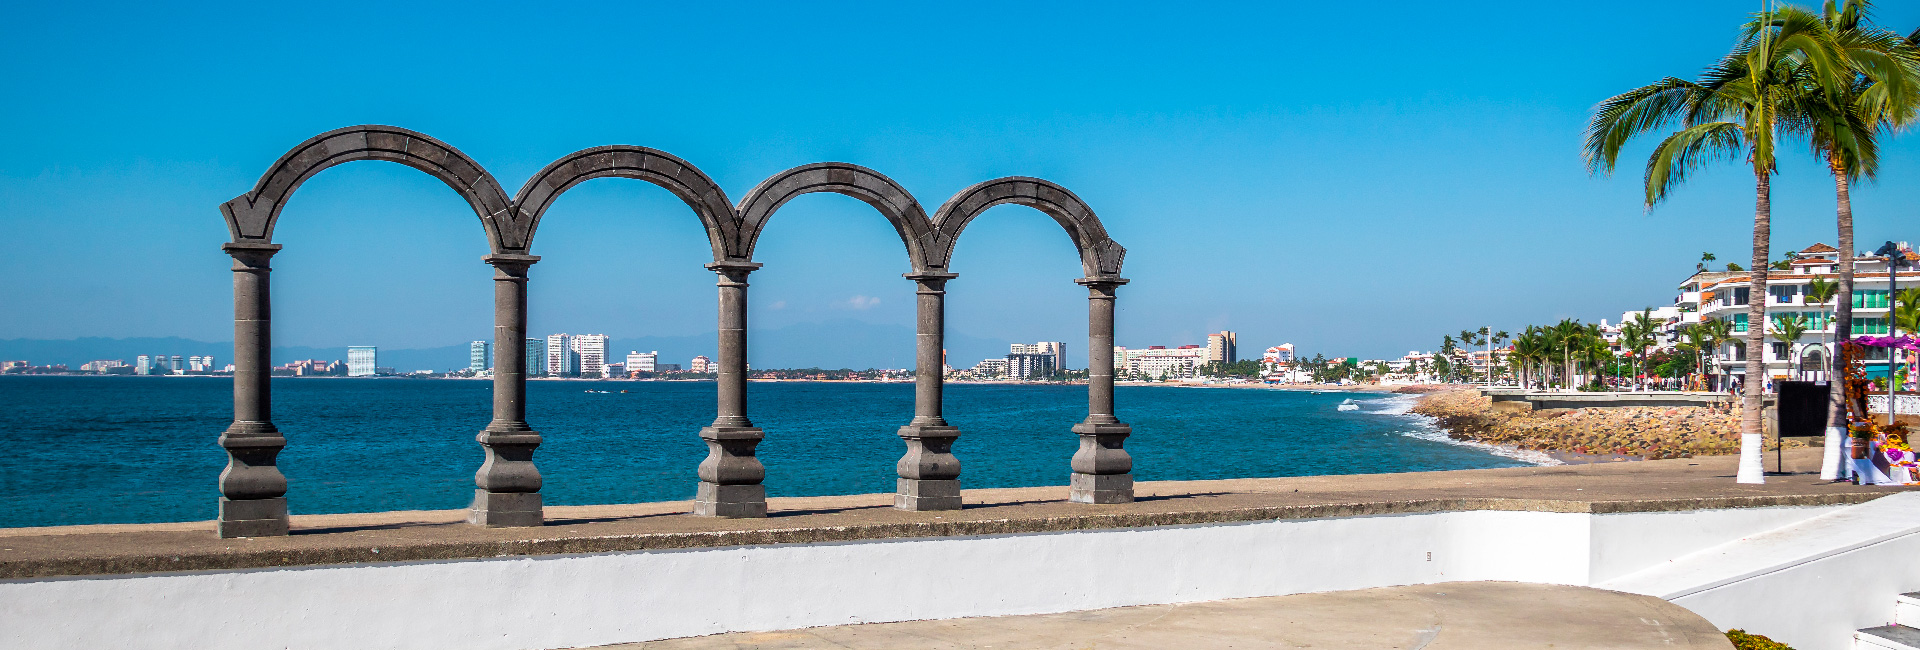 The malecon of puerto vallarta and why it is worth a visit1920x650